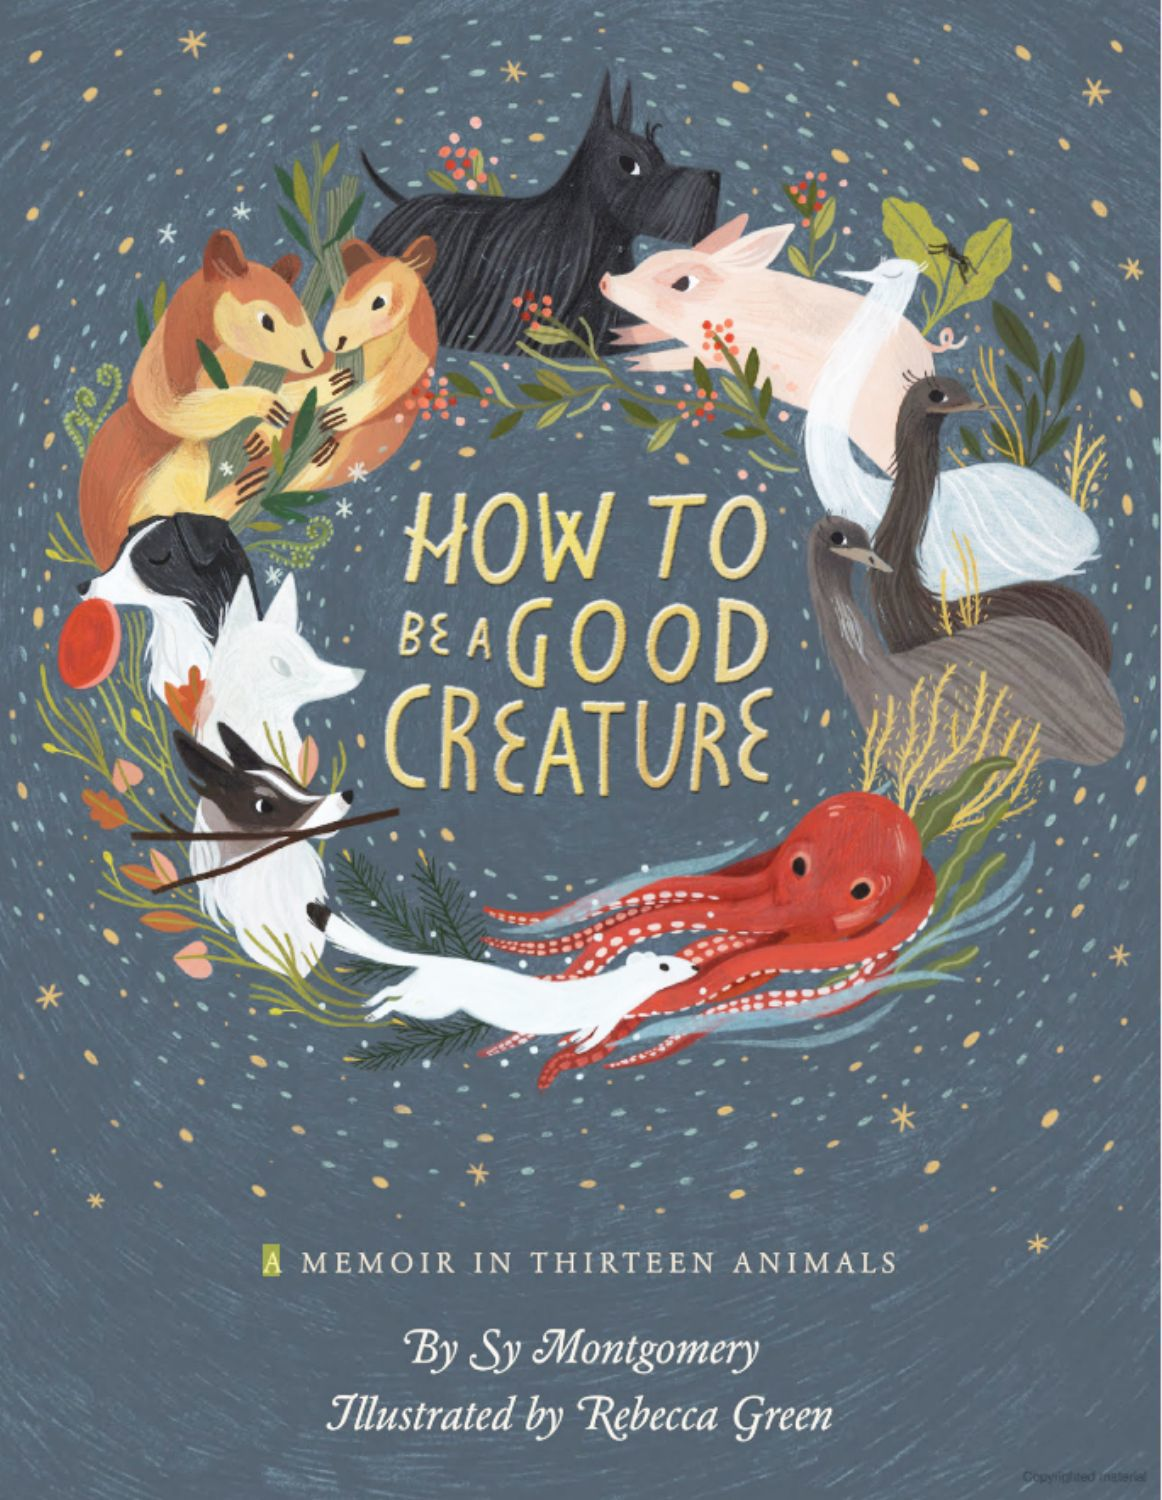 Sy Montgomery's How To Be a Good Creature